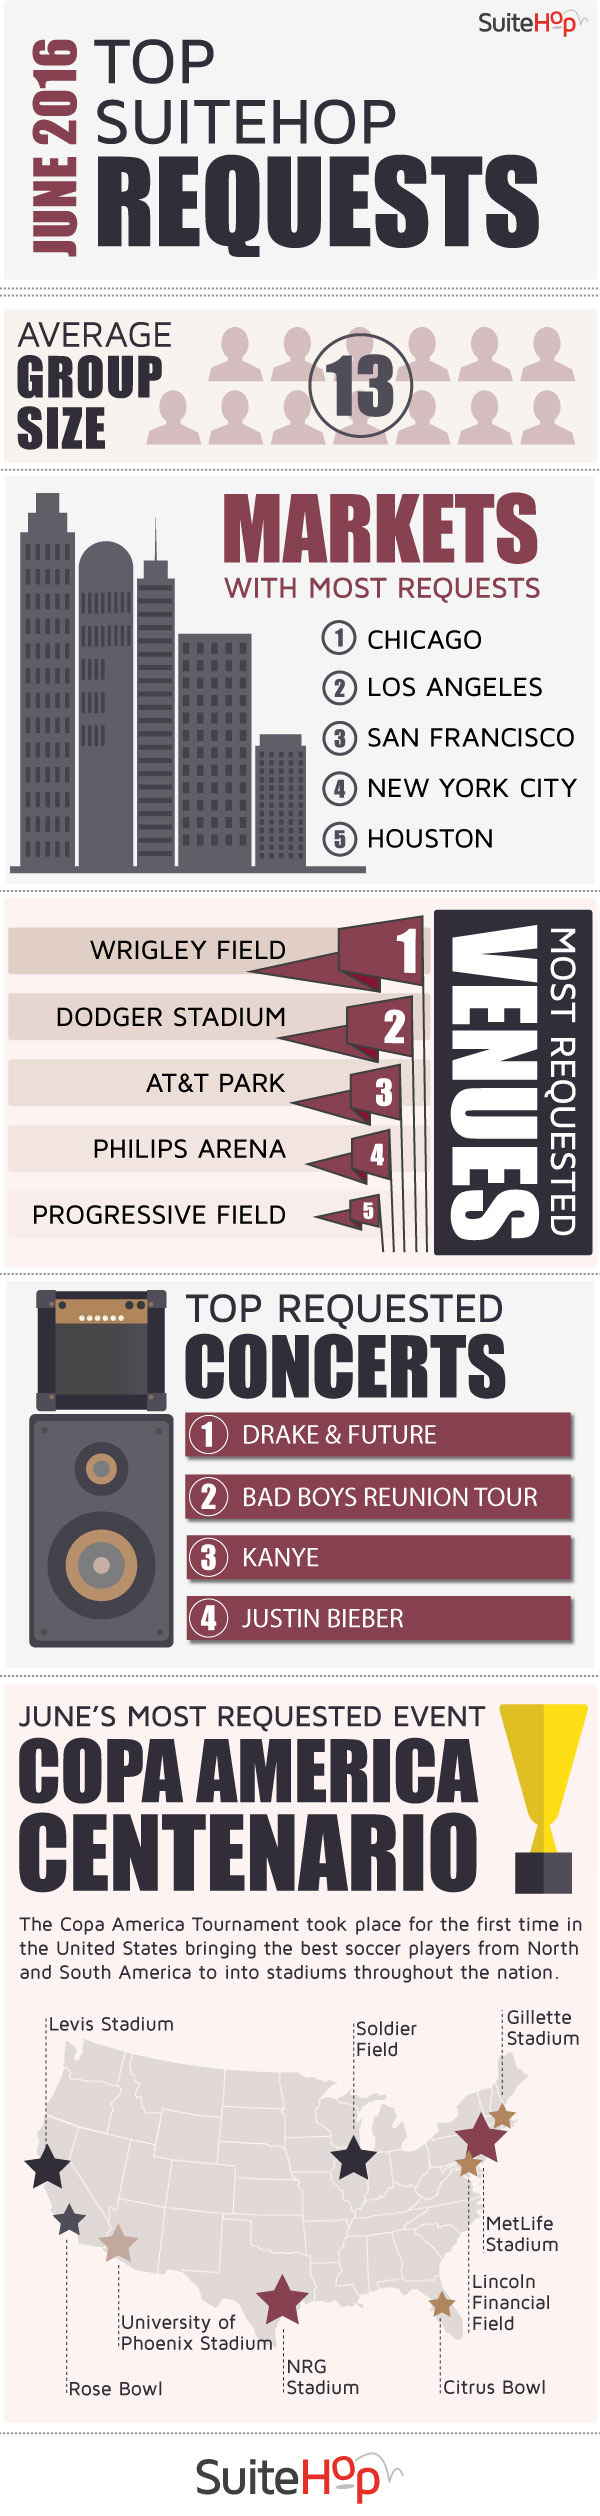 T he top suite event requests for the month of June.